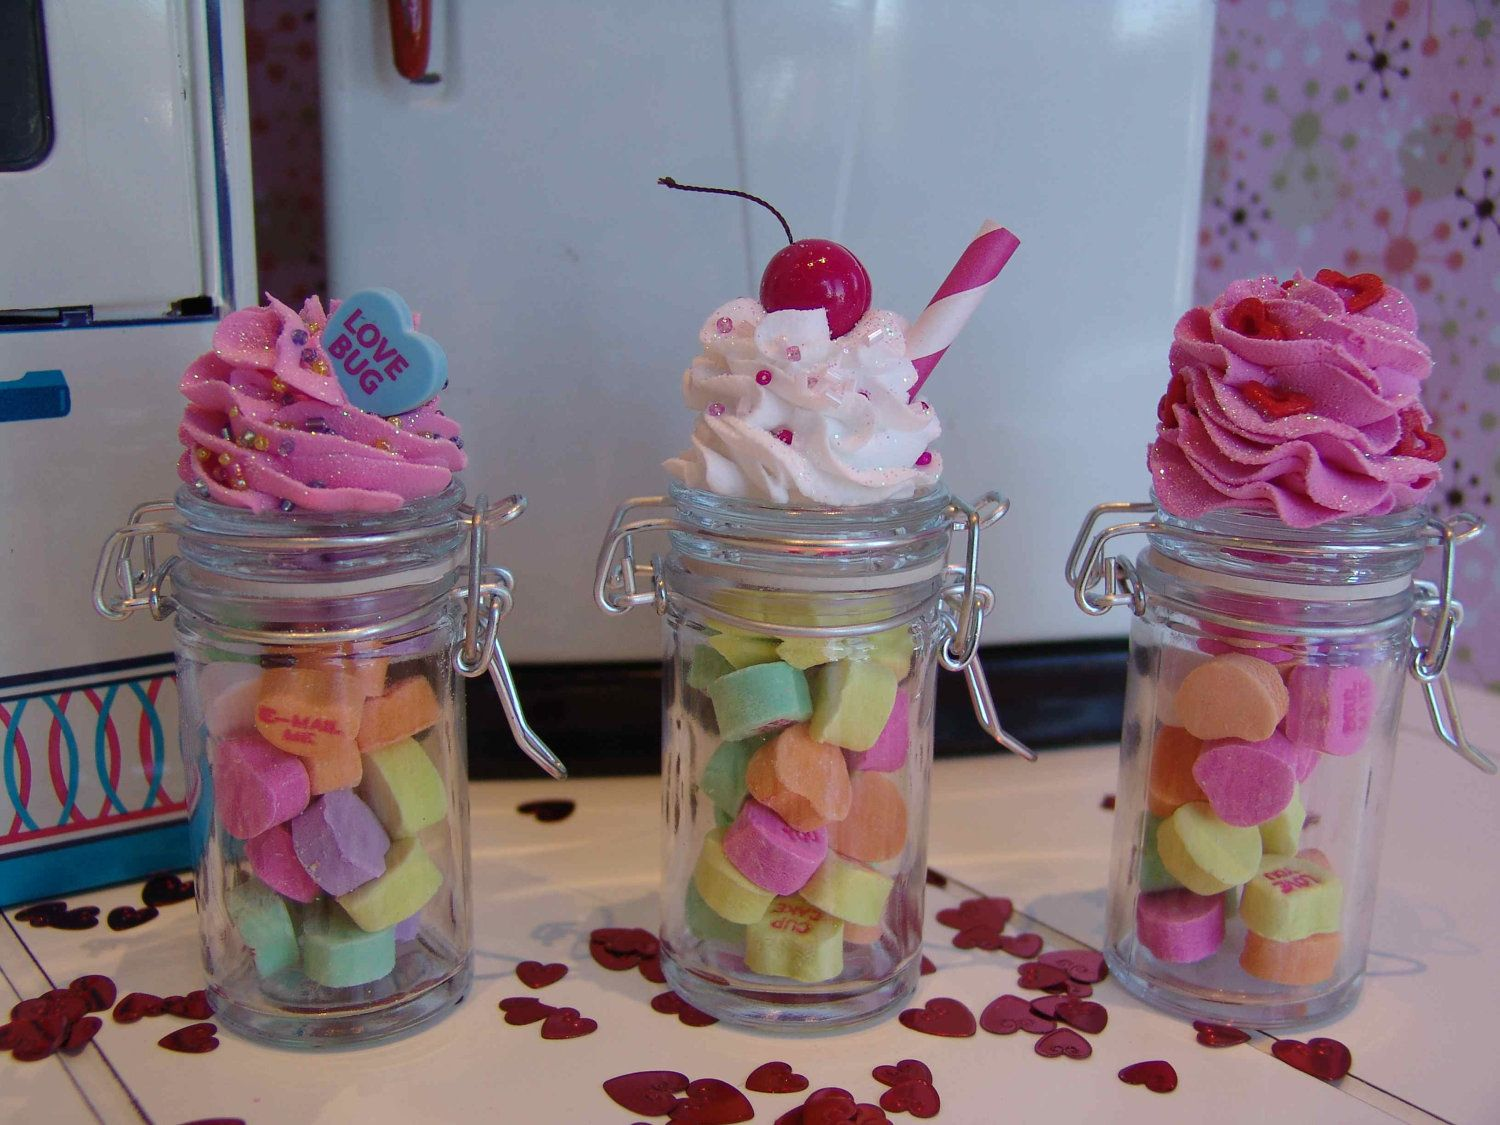 Set of 3 Sweet Heart Candy Jars filled with by TheFakeryBakeryShop, $14.95